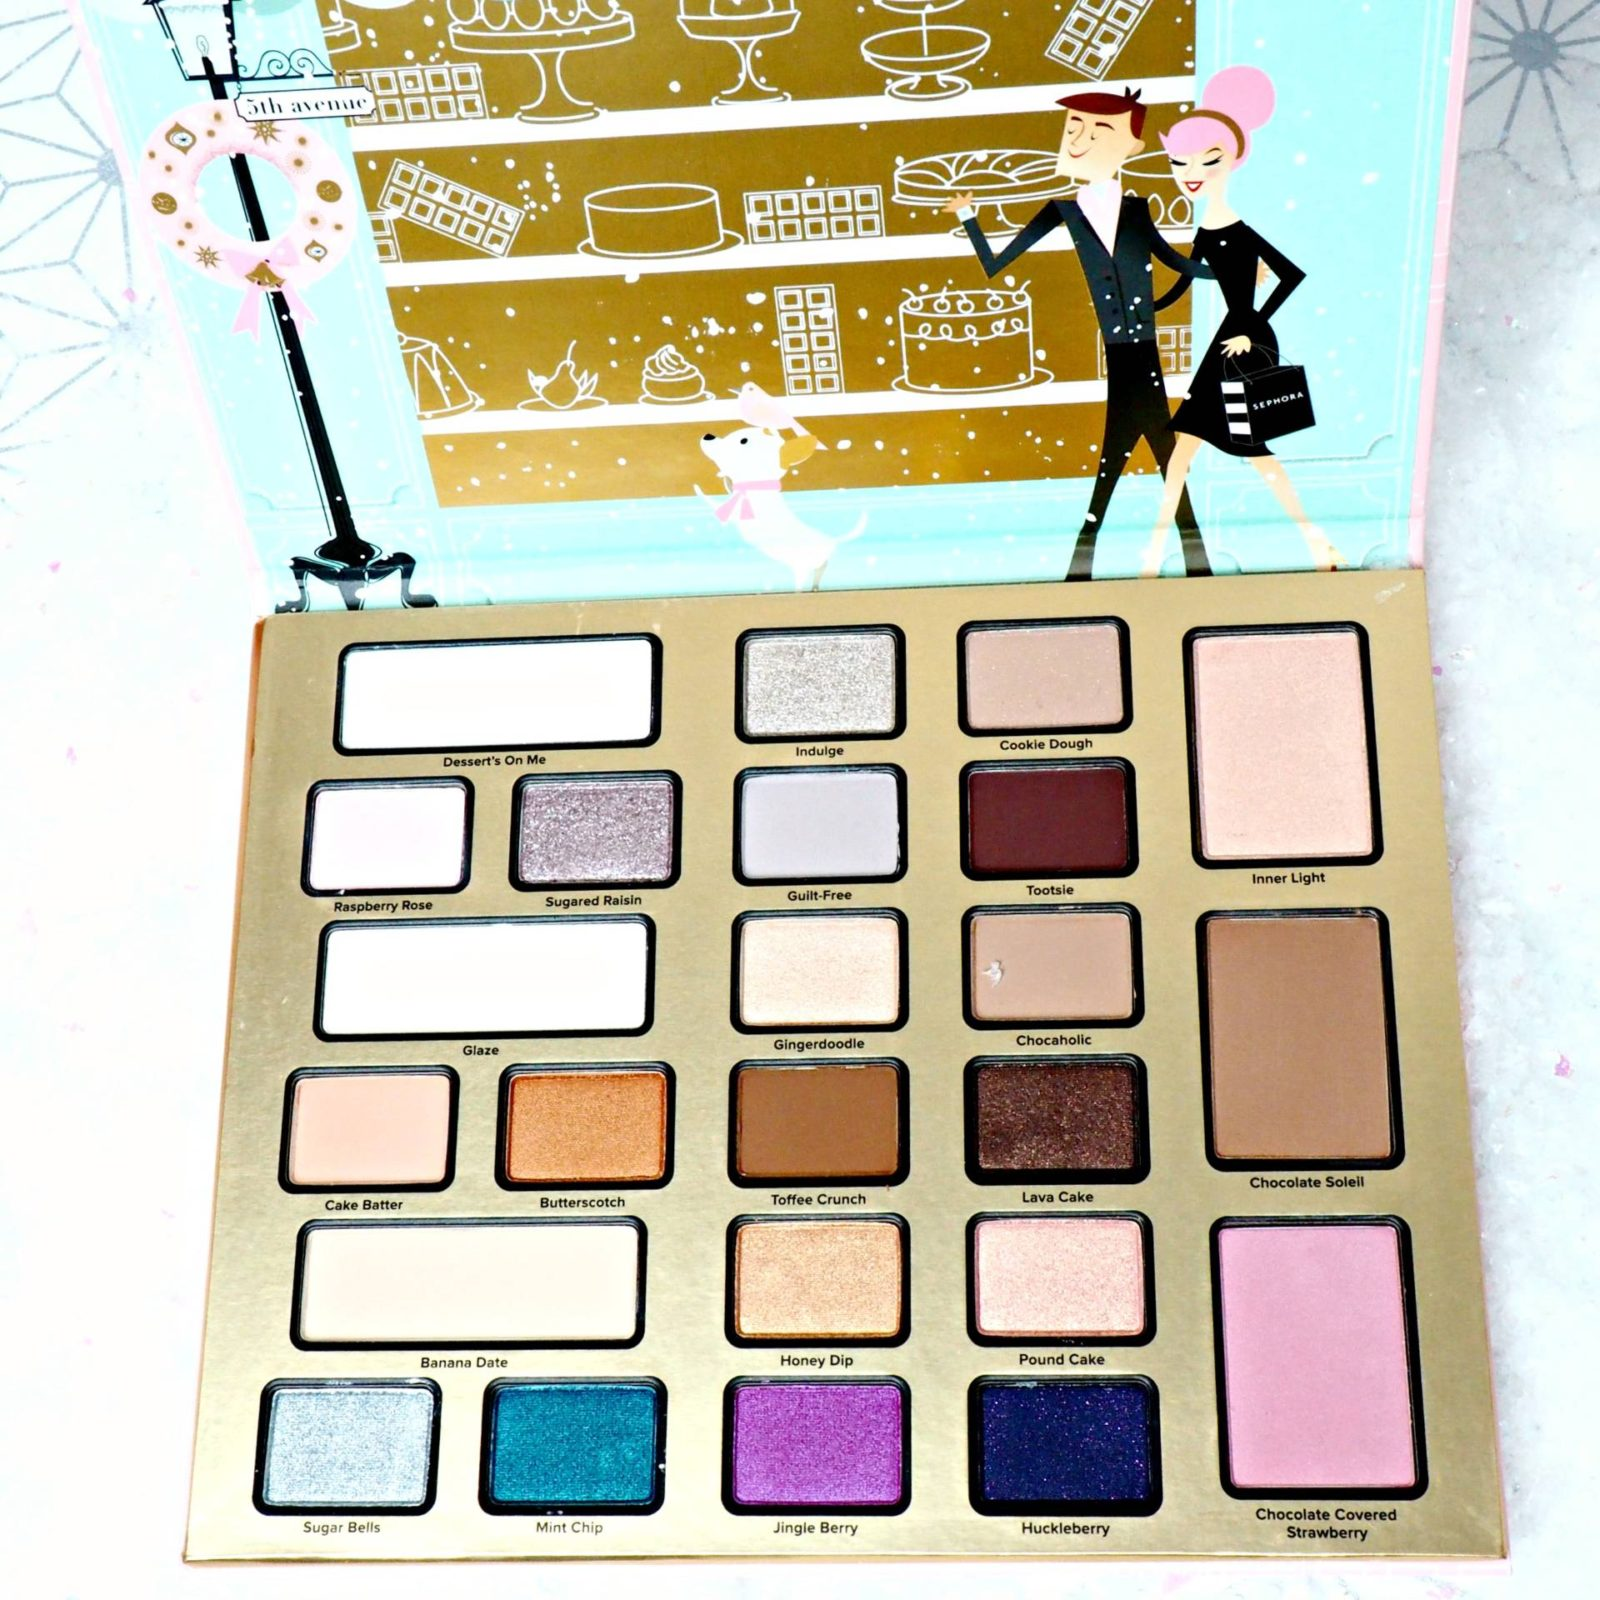 Too Faced Christmas in New York House of Paper Doll